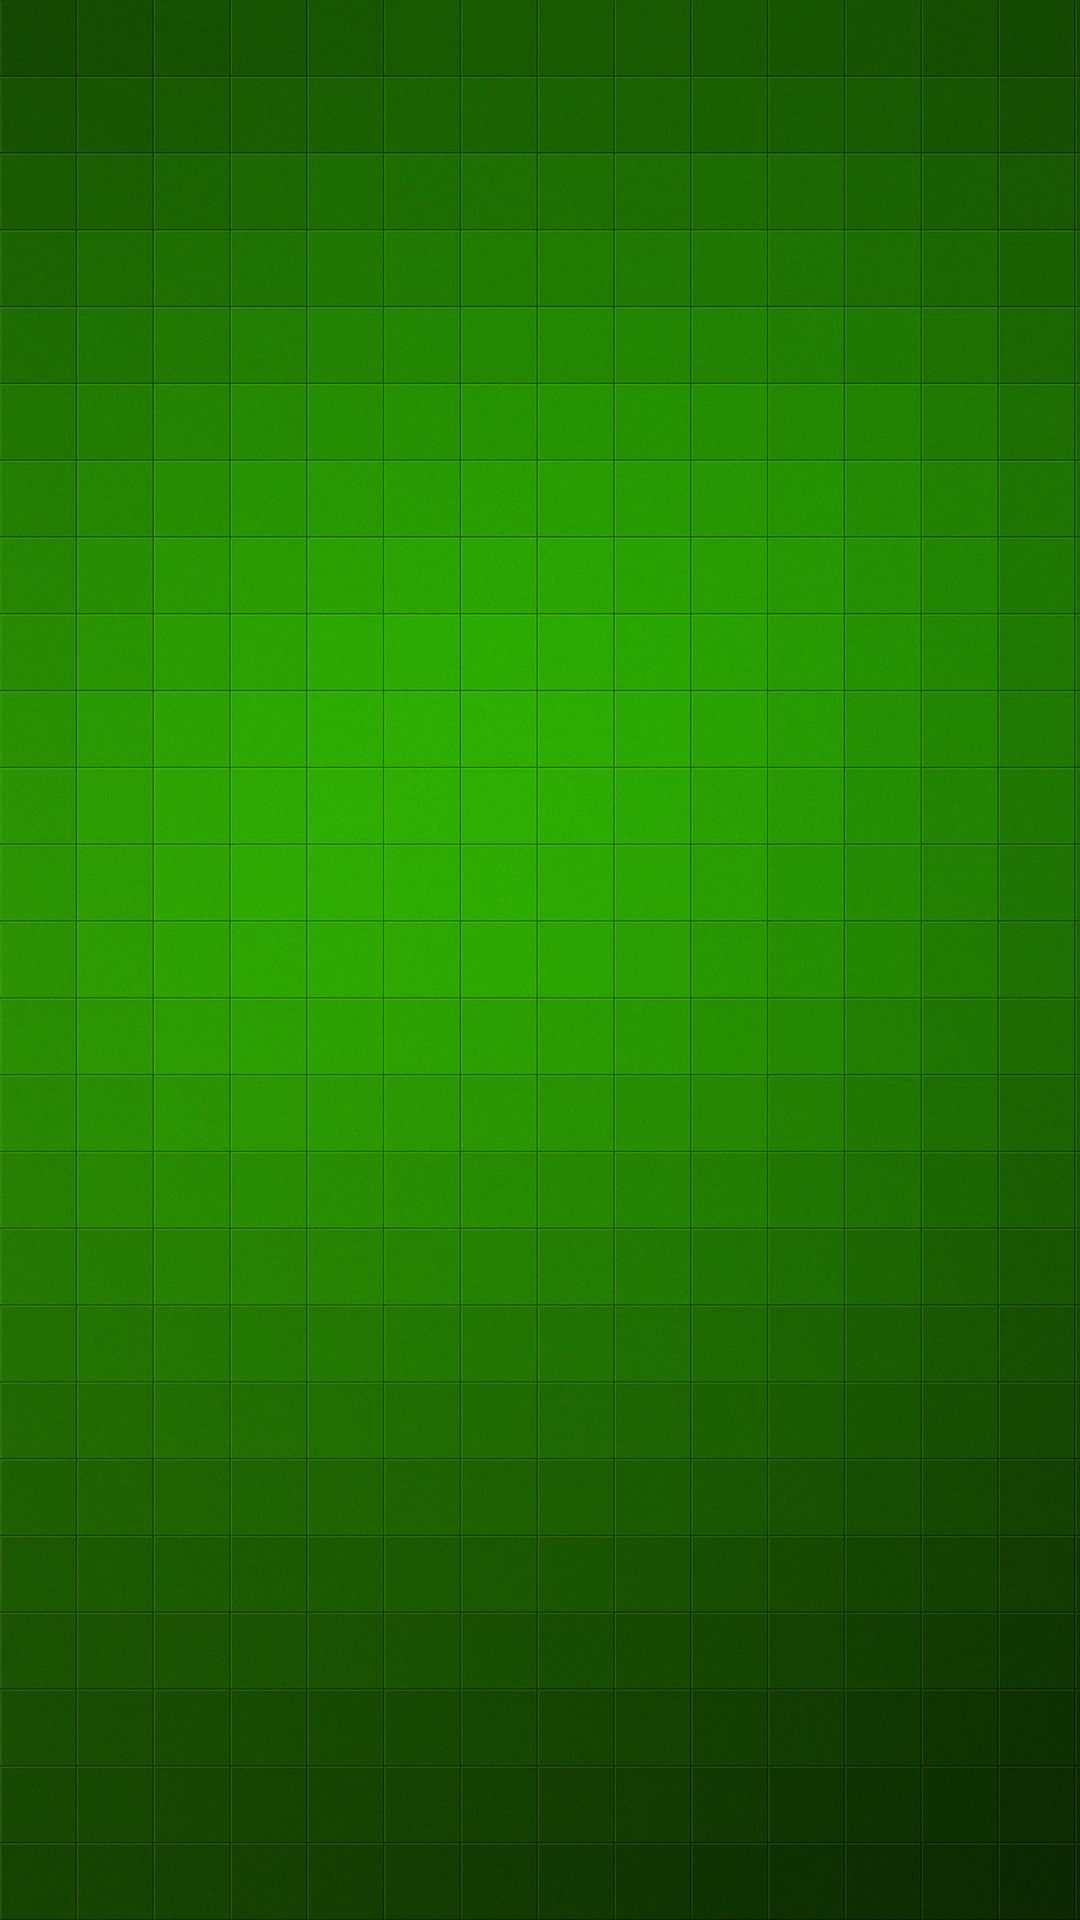 Wallpaper For Galaxy S4 With Square Pattern Over Green Gradient In 1080x1920 Resolution